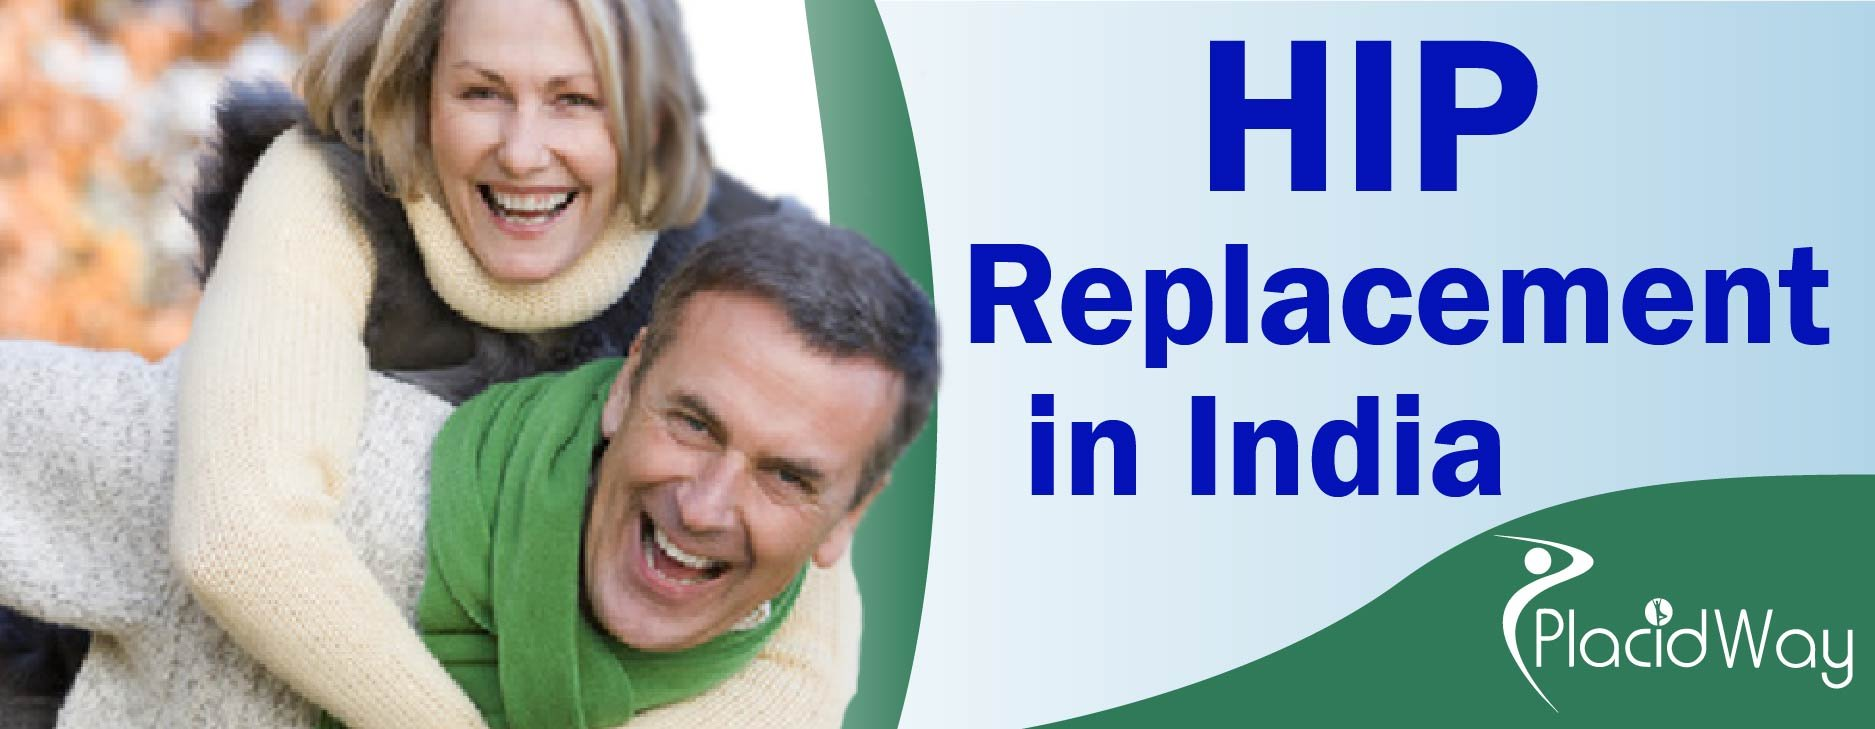 Joint Replacement Surgery, Hip Replacement Treatment